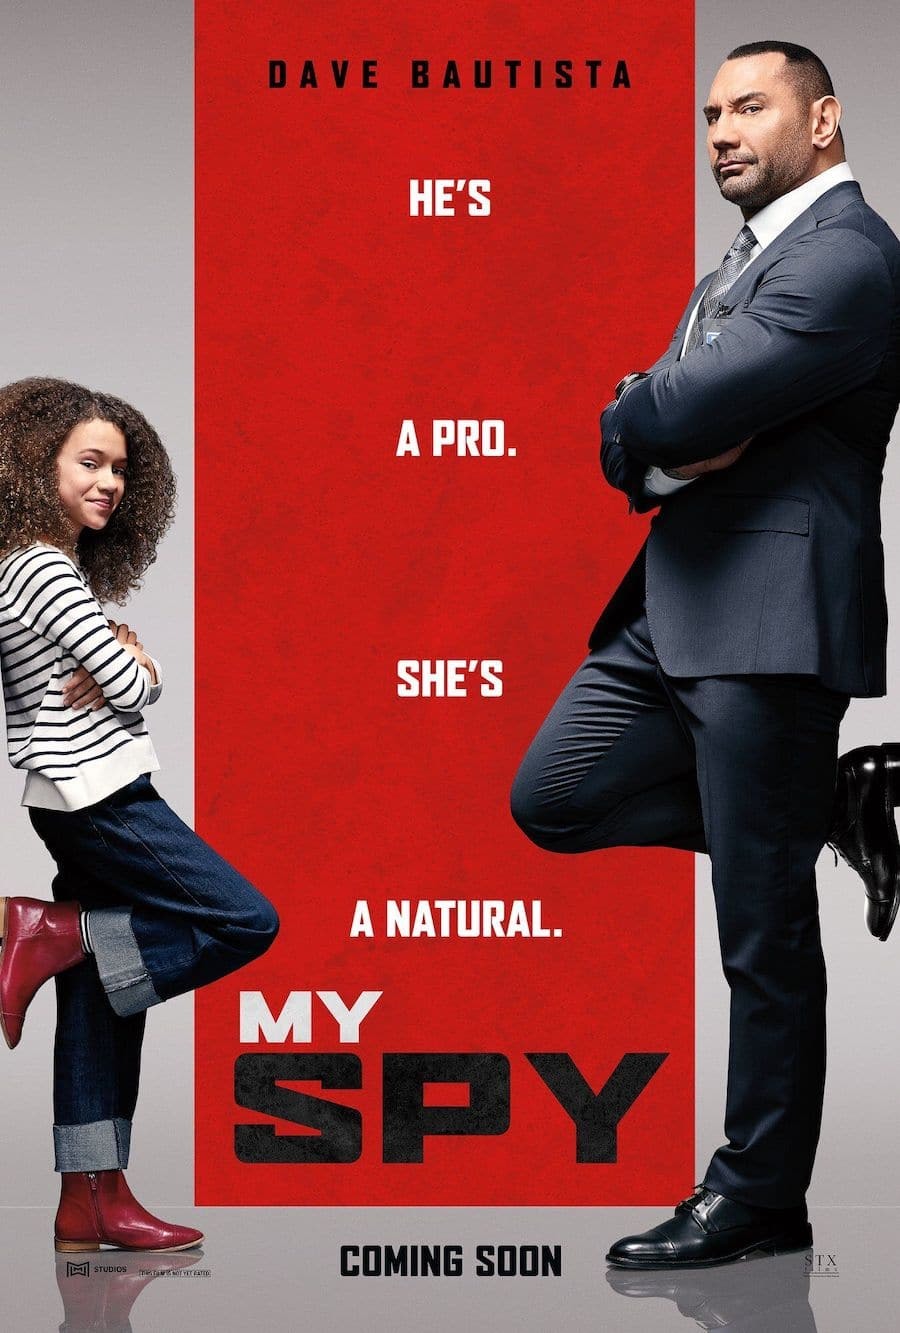 My Spy Parents Guide image of Movie Poster